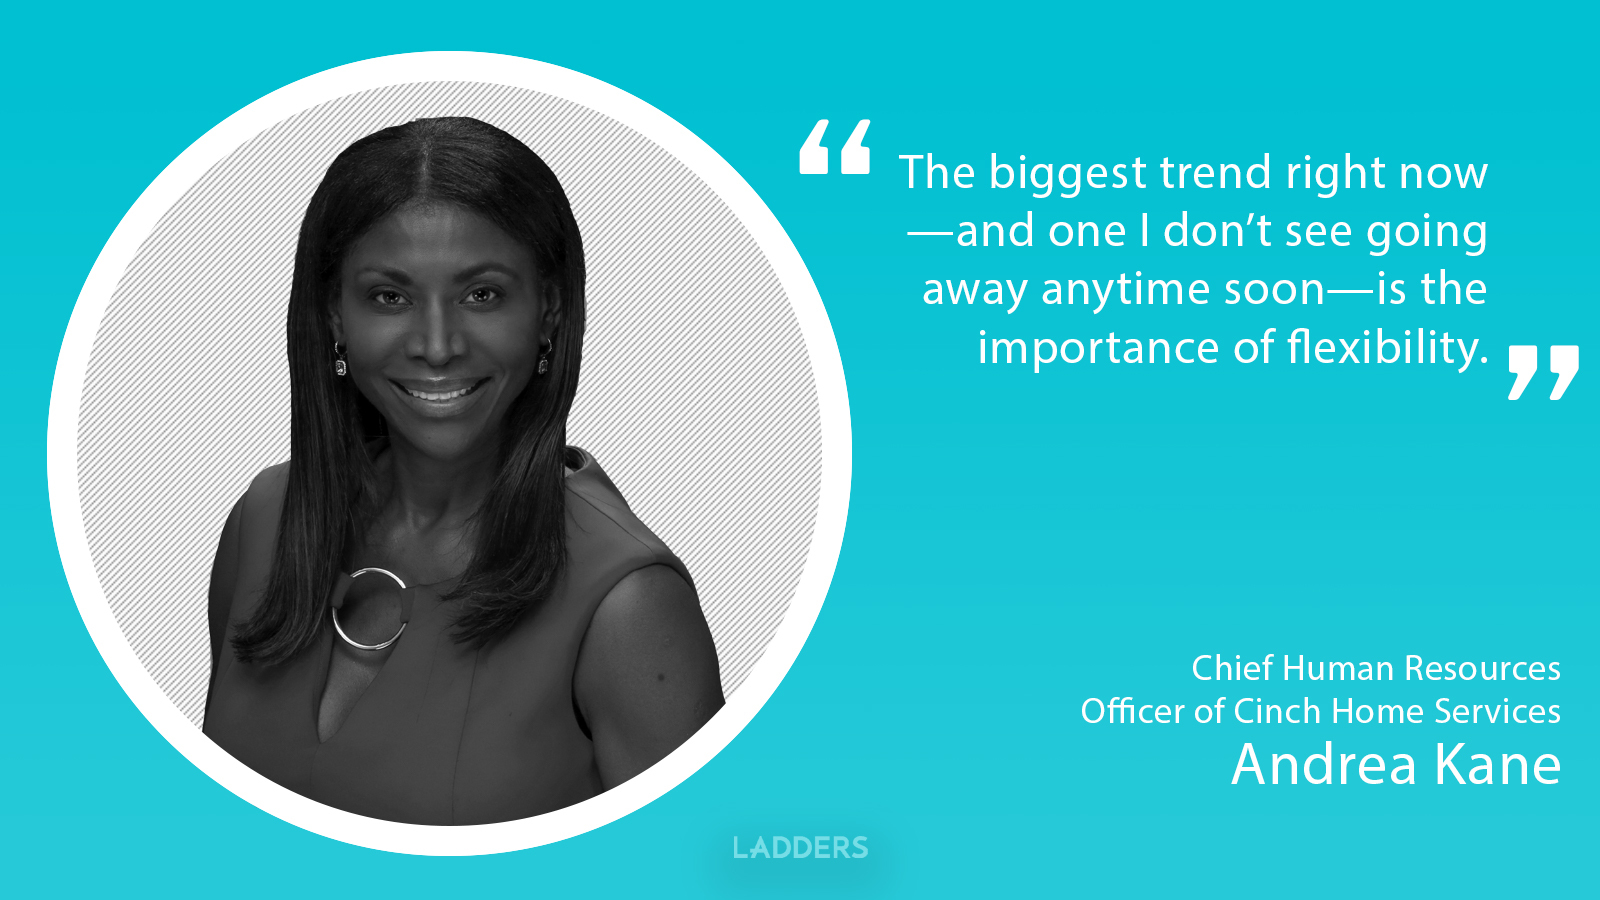 Andrea Kane, CHRO, Cinch Home Services: The biggest trend right now is the importance of flexibility